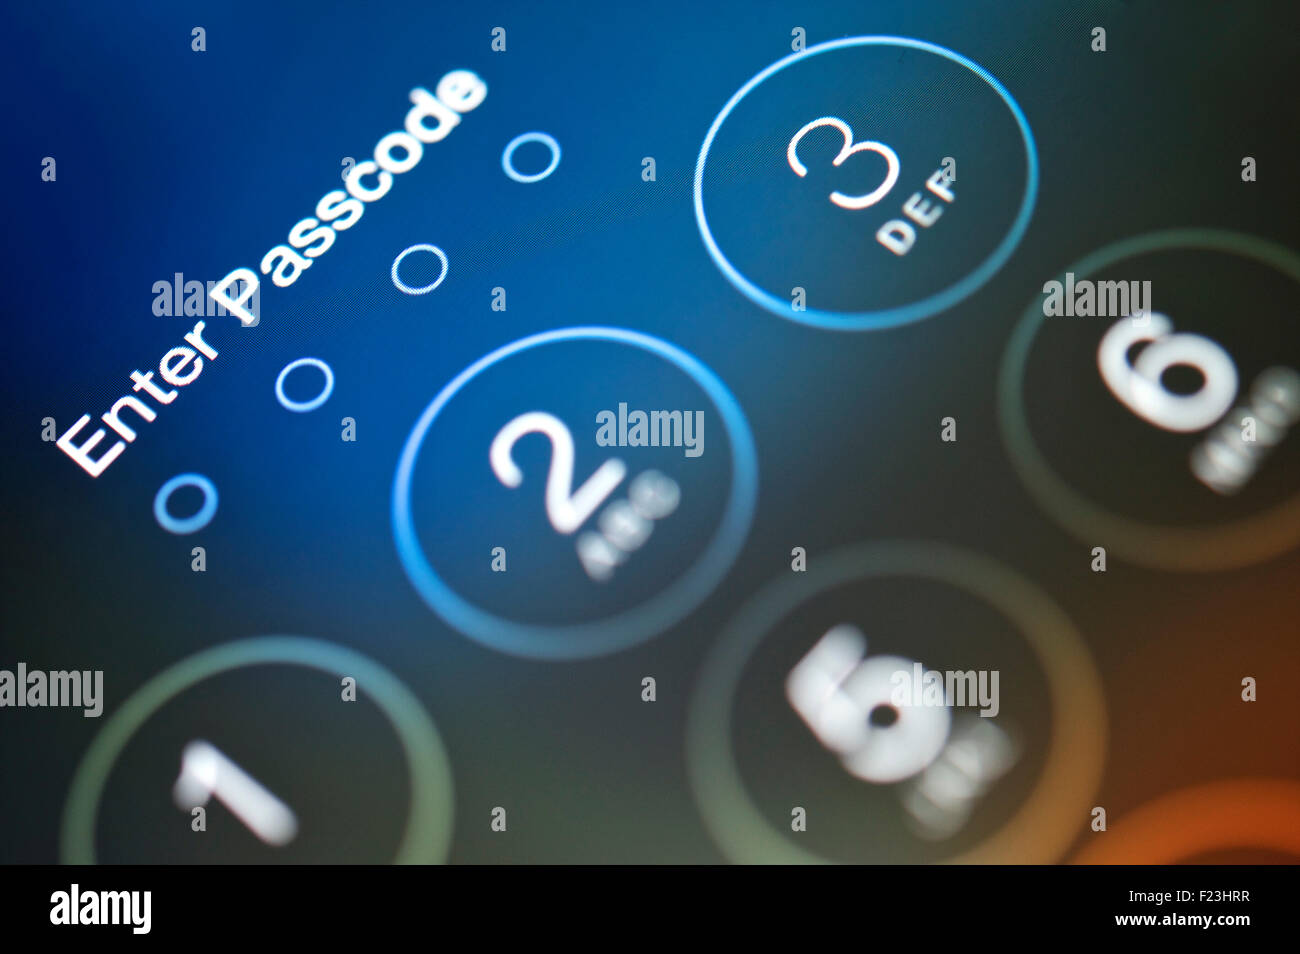 Enter Passcode. Touch screen lock screen requesting passcode. - Stock Image